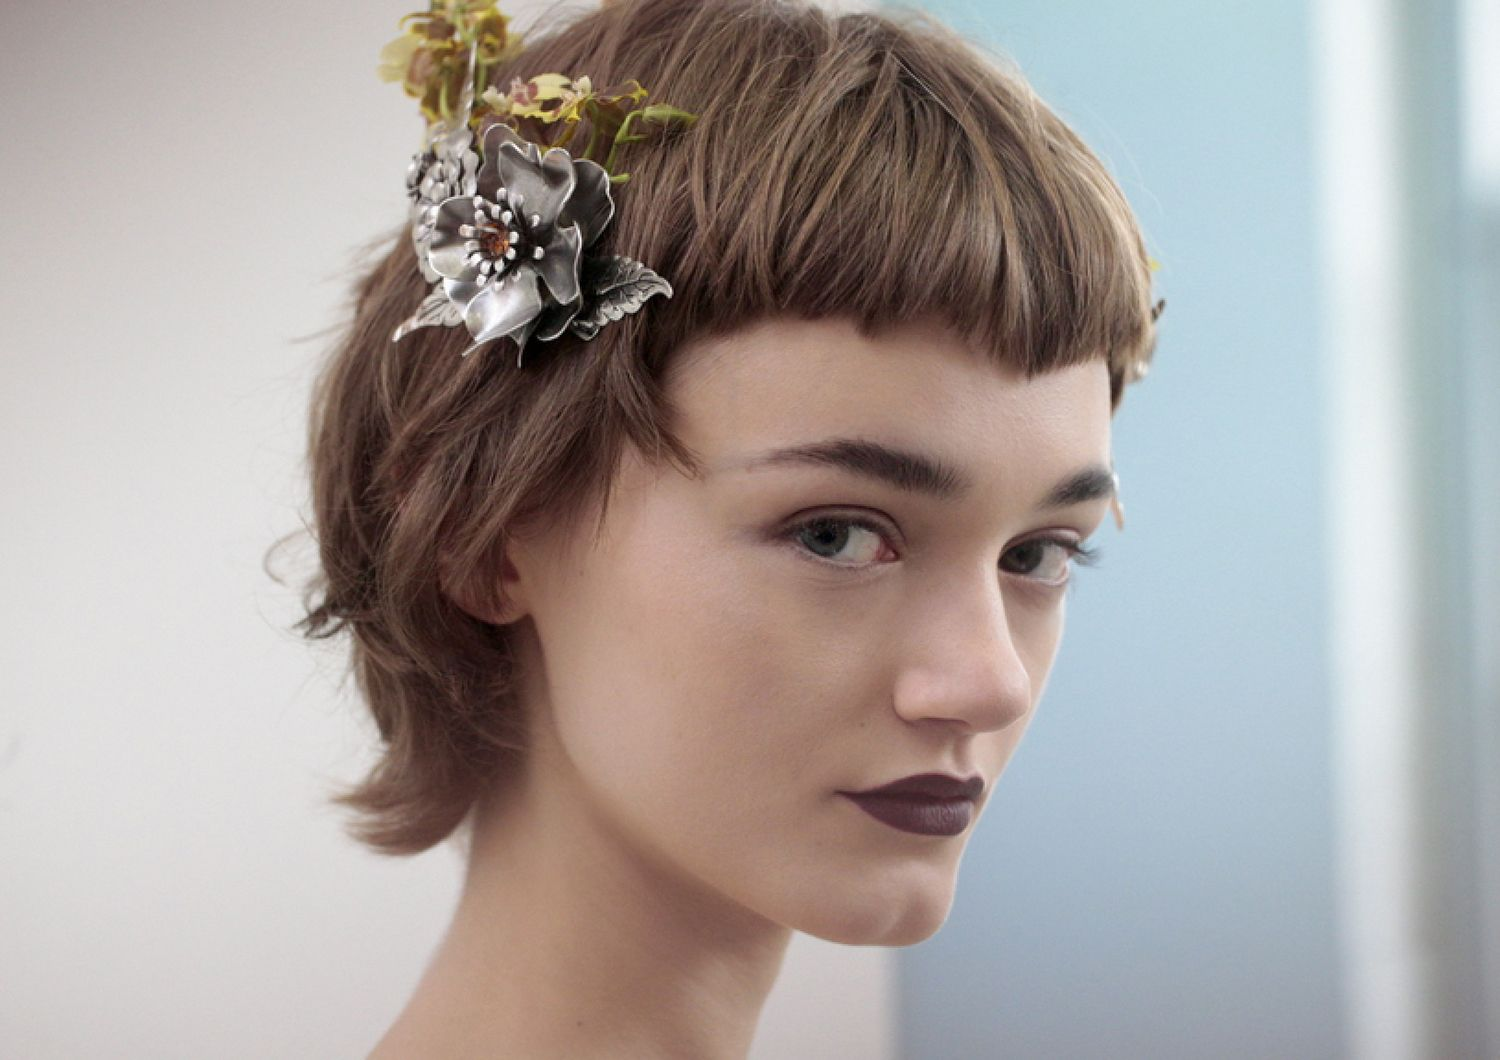 The New Floral Crowns Are Gilded and Gothic—Courtesy of Rodarte